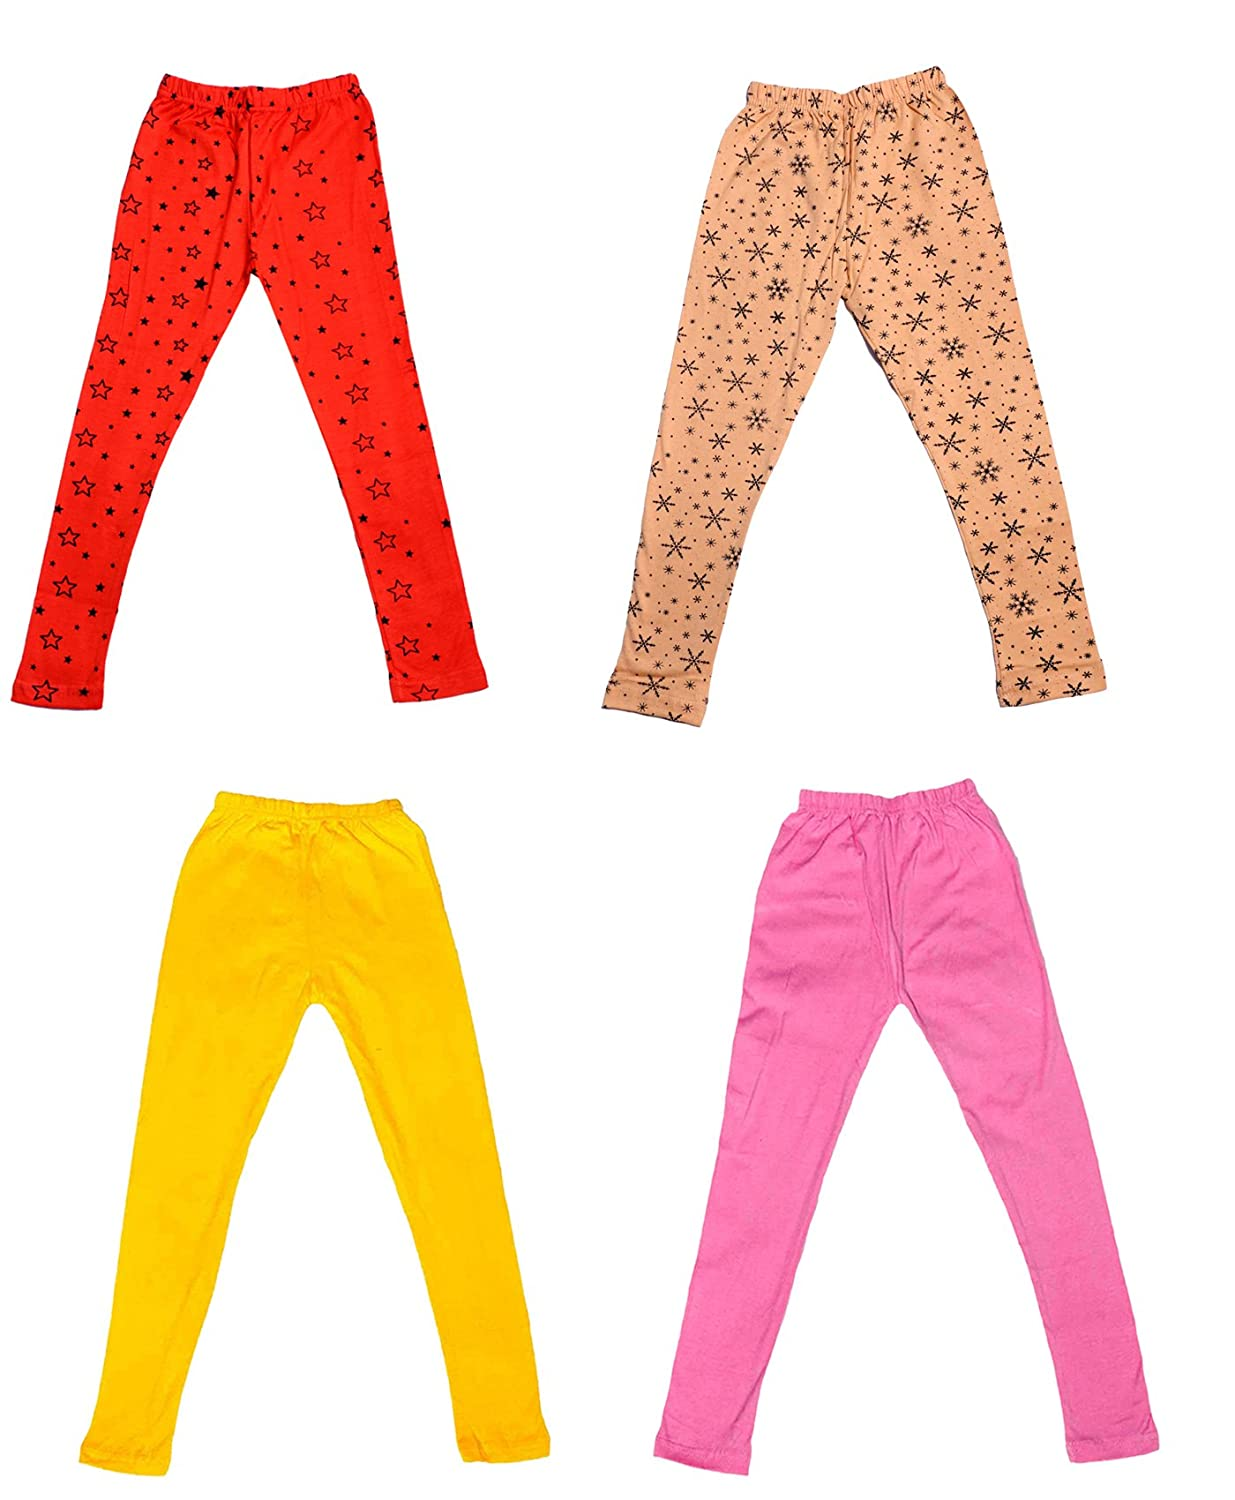 and 2 Cotton Printed Legging Pants Pack Of 4 Indistar Girls 2 Cotton Solid Legging Pants /_Multicolor/_Size-7-8 Years/_71407081619-IW-P4-30